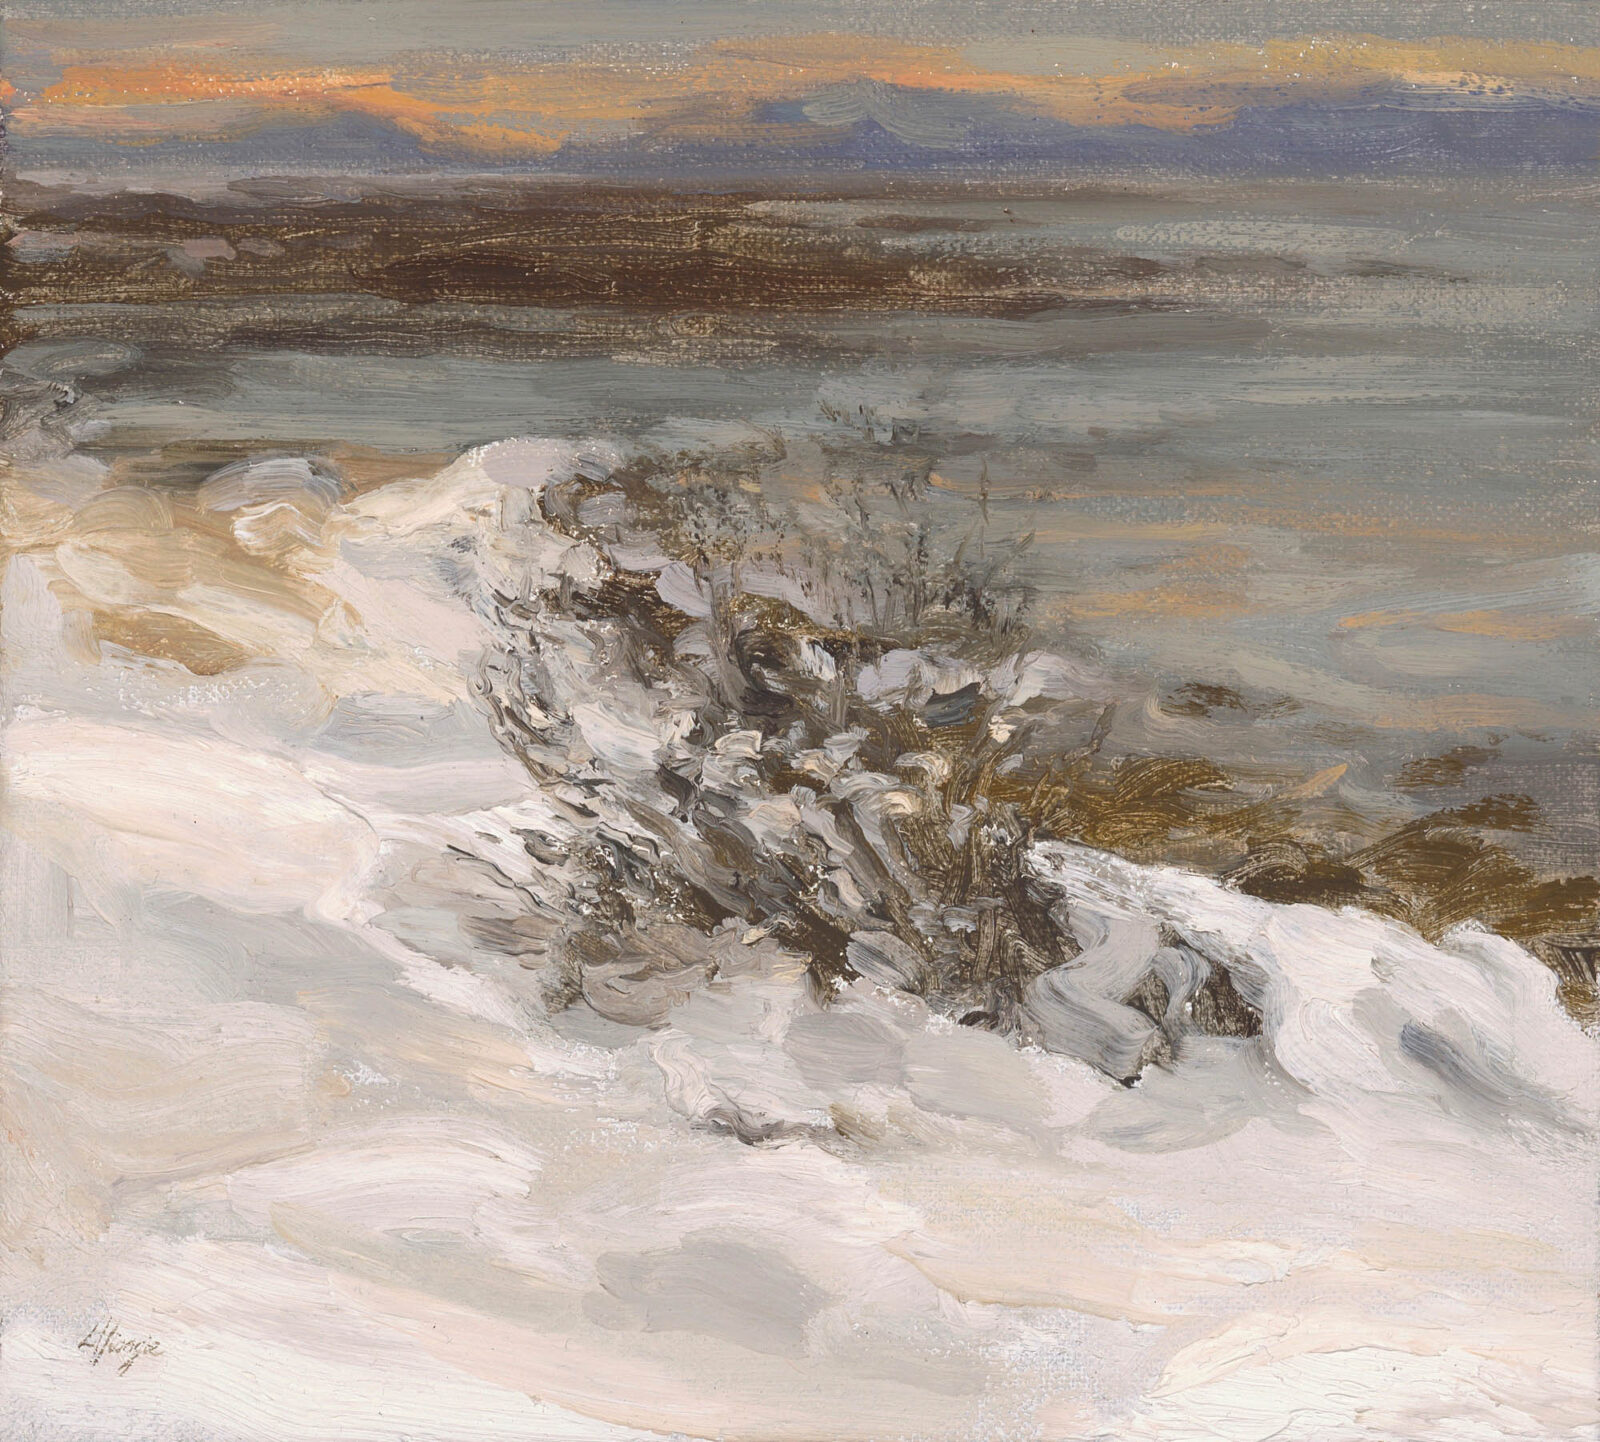 Liza Visagie - Stretch of Snow and Sea. Oil on Linen 9 x 10 inches